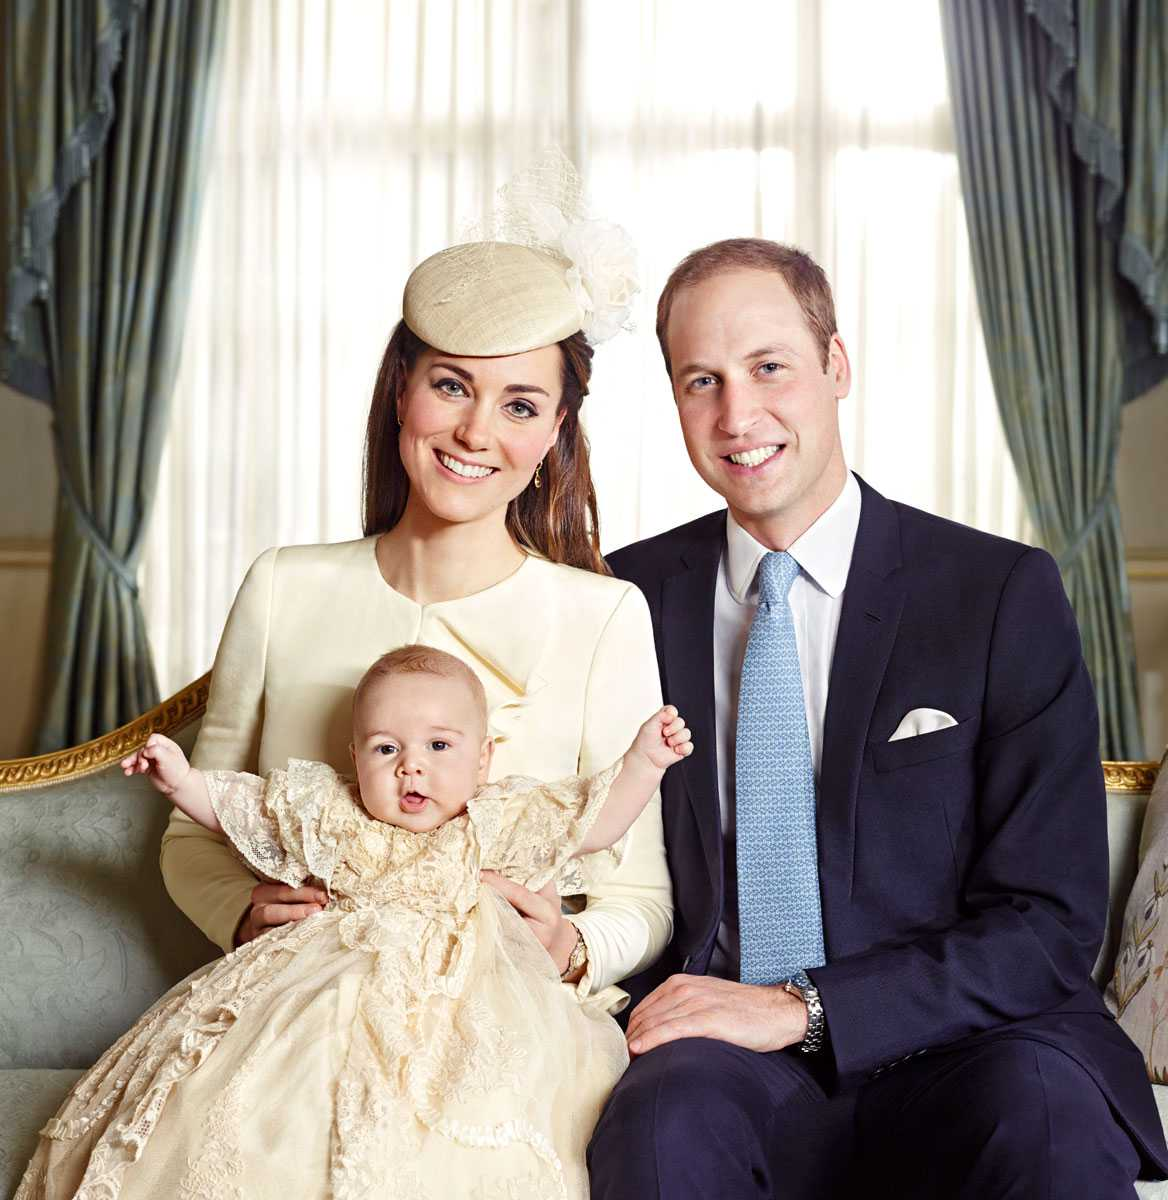 Kate Middleton And Prince William Expecting Second Royal Baby | Kate Middleton